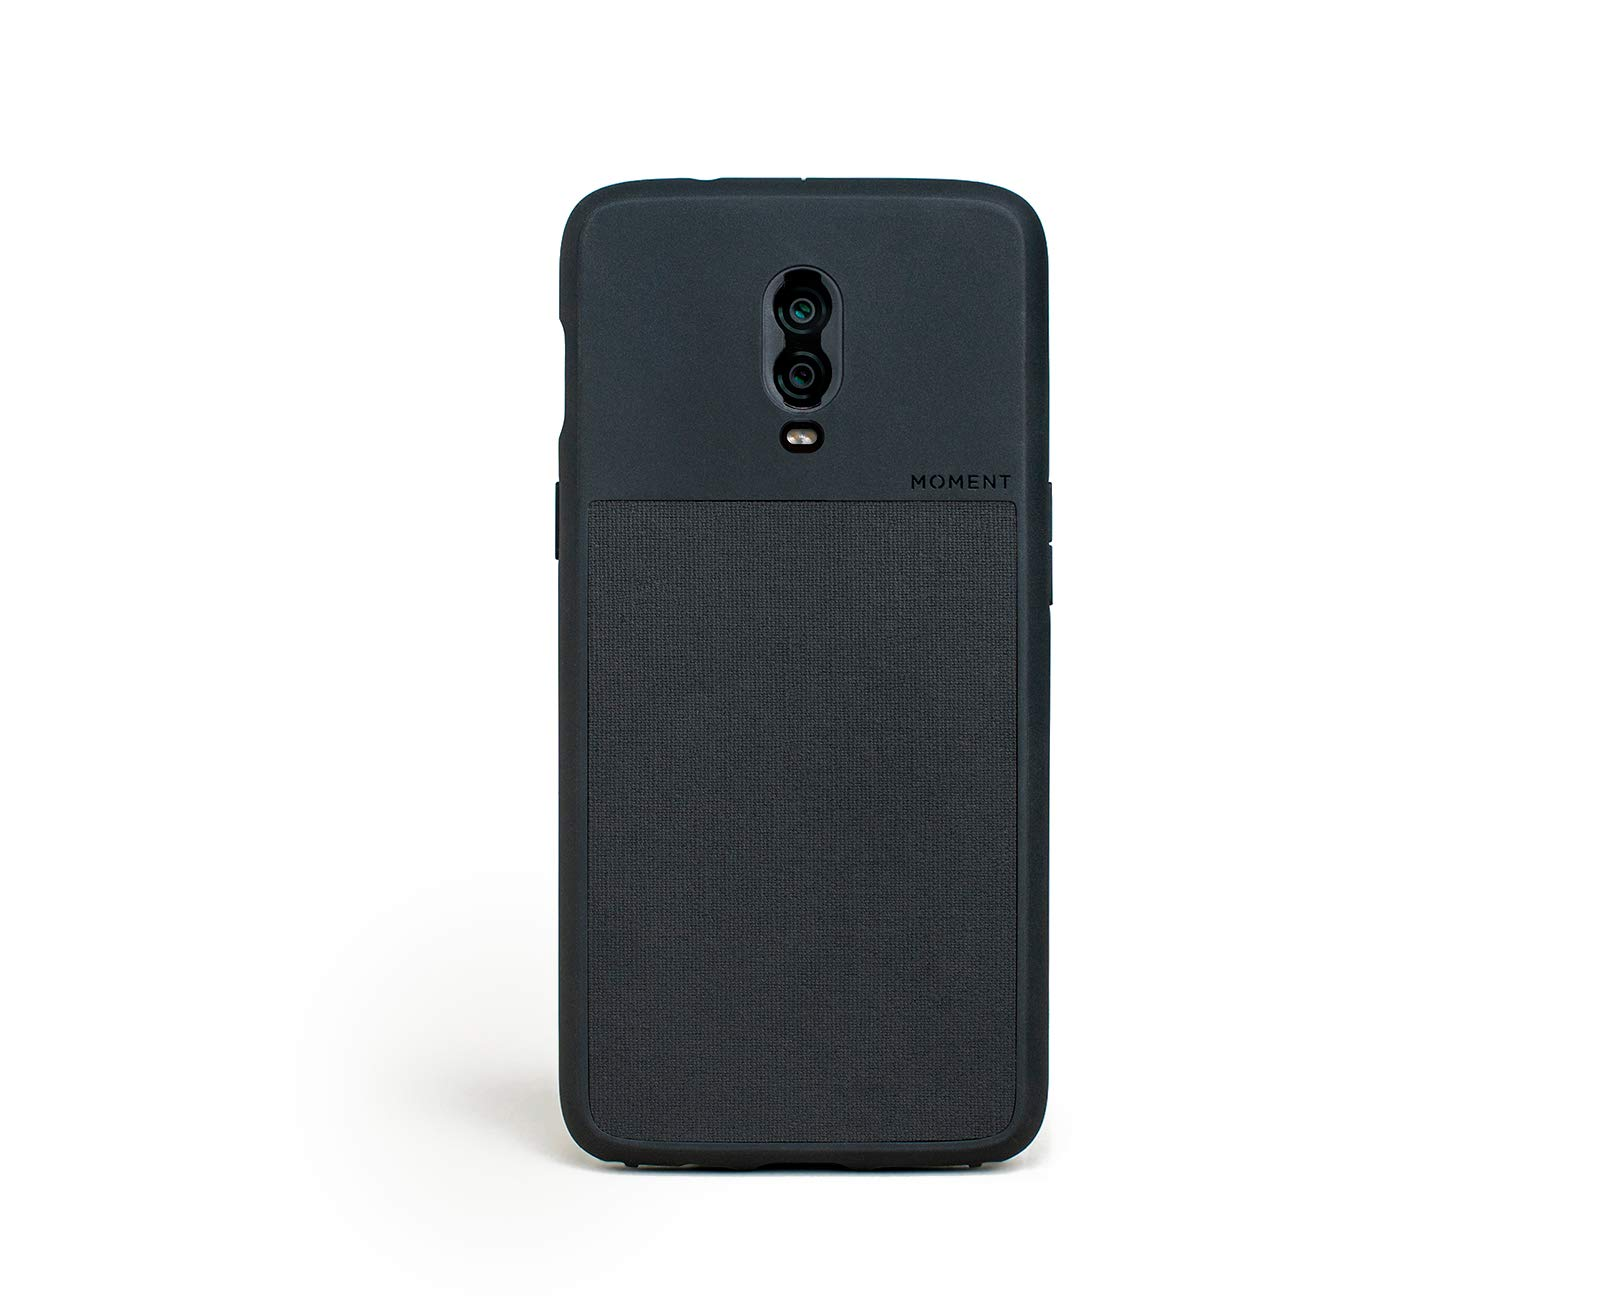 ویکالا · خرید  اصل اورجینال · خرید از آمازون · OnePlus 6T Case || Moment Photo Case in Black Canvas - Thin, Protective, Wrist Strap Friendly case for Camera Lovers. wekala · ویکالا